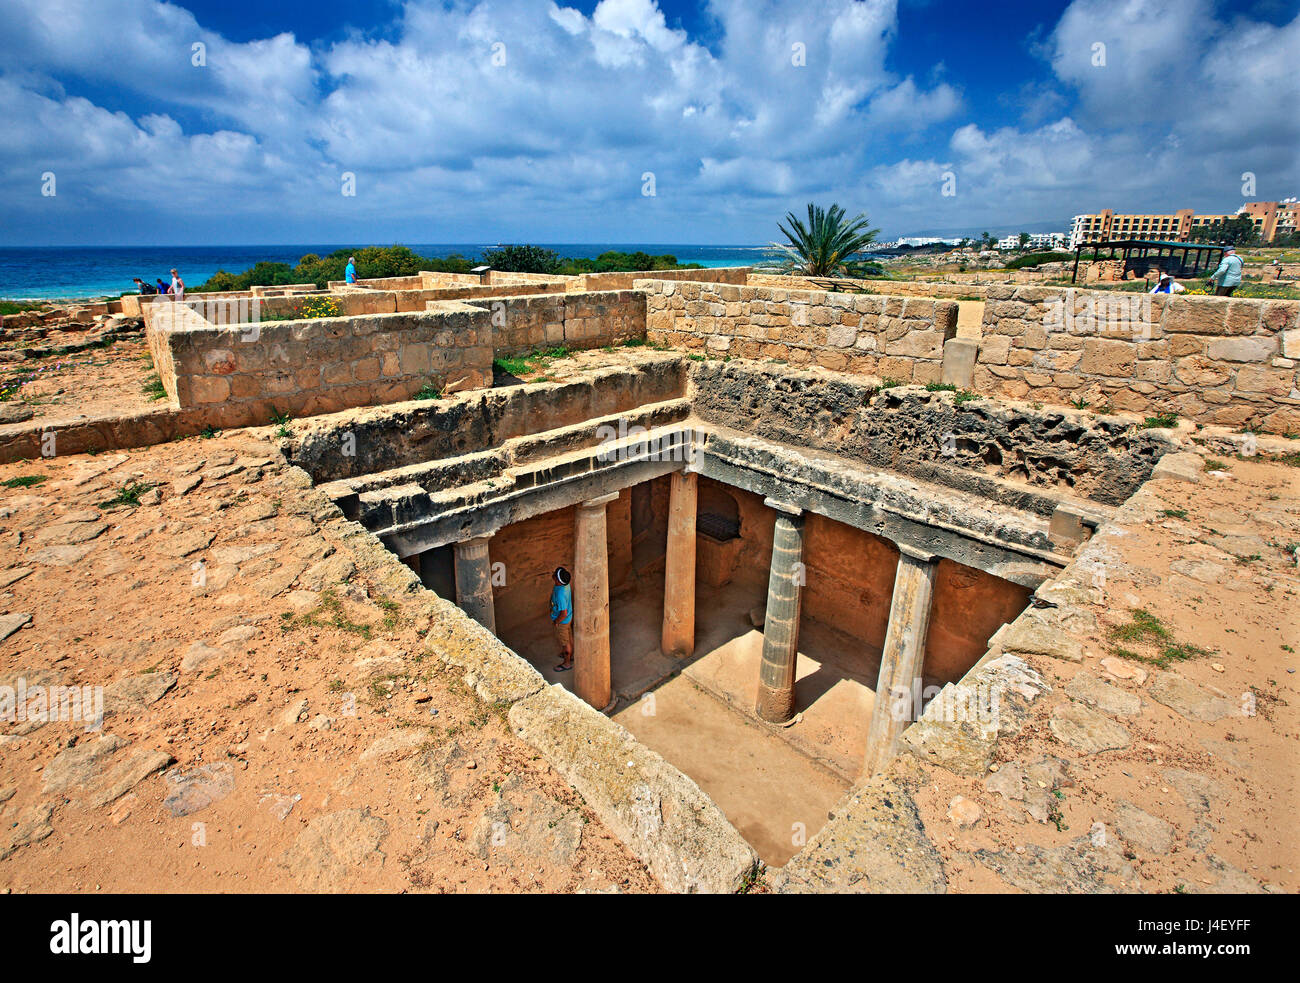 Tomb 3, Tombs of the Kings (UNESCO World Heritage Site), Paphos, Cyprus. Paphos town is one of the 2 European Capitals - Stock Image